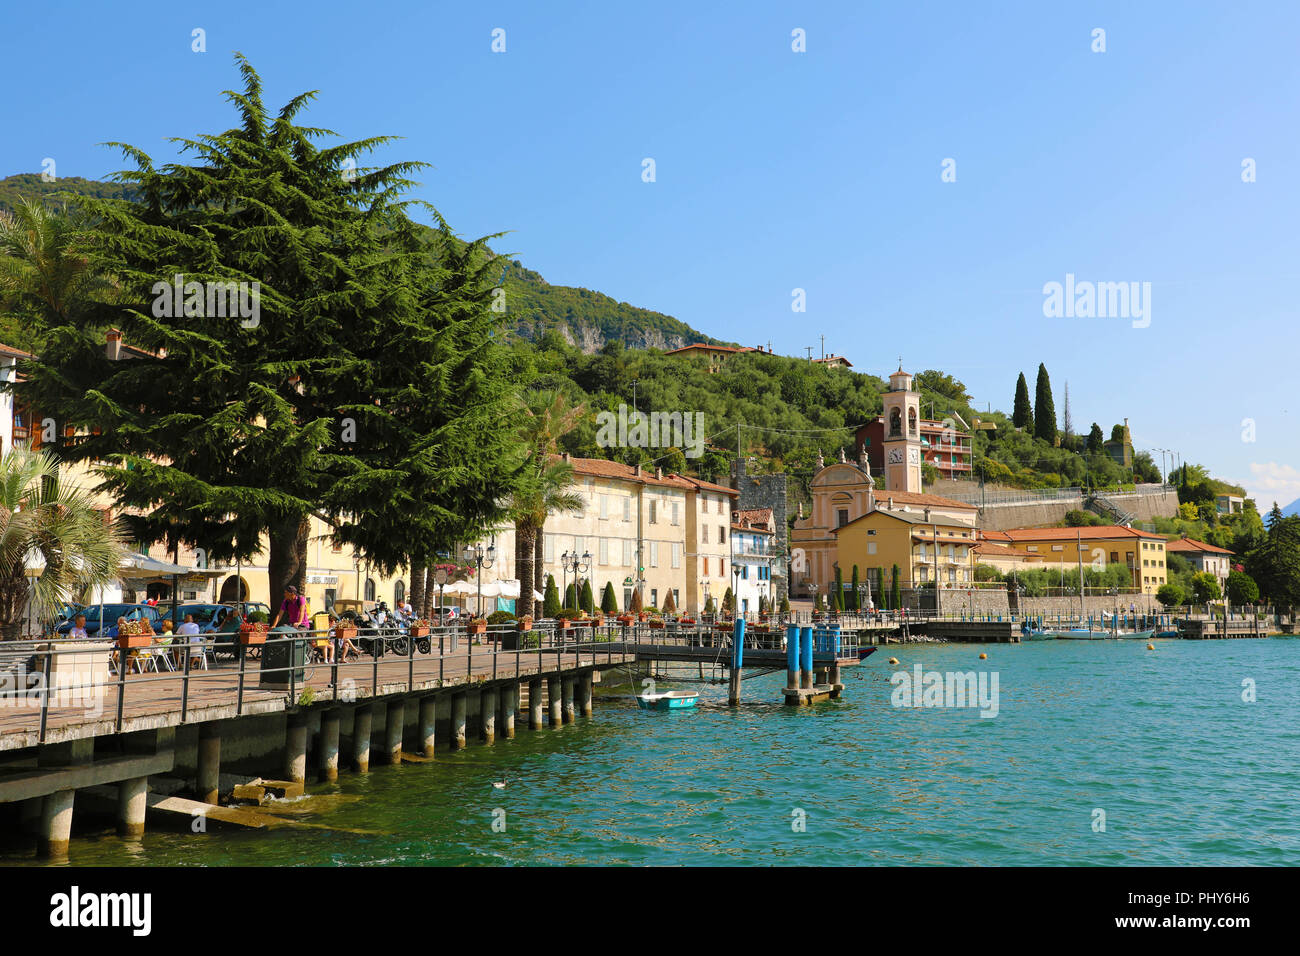 LAKE ISEO, ITALY - AUGUST 20, 2018: view of small village with church on Lake Iseo, Italy - Stock Image